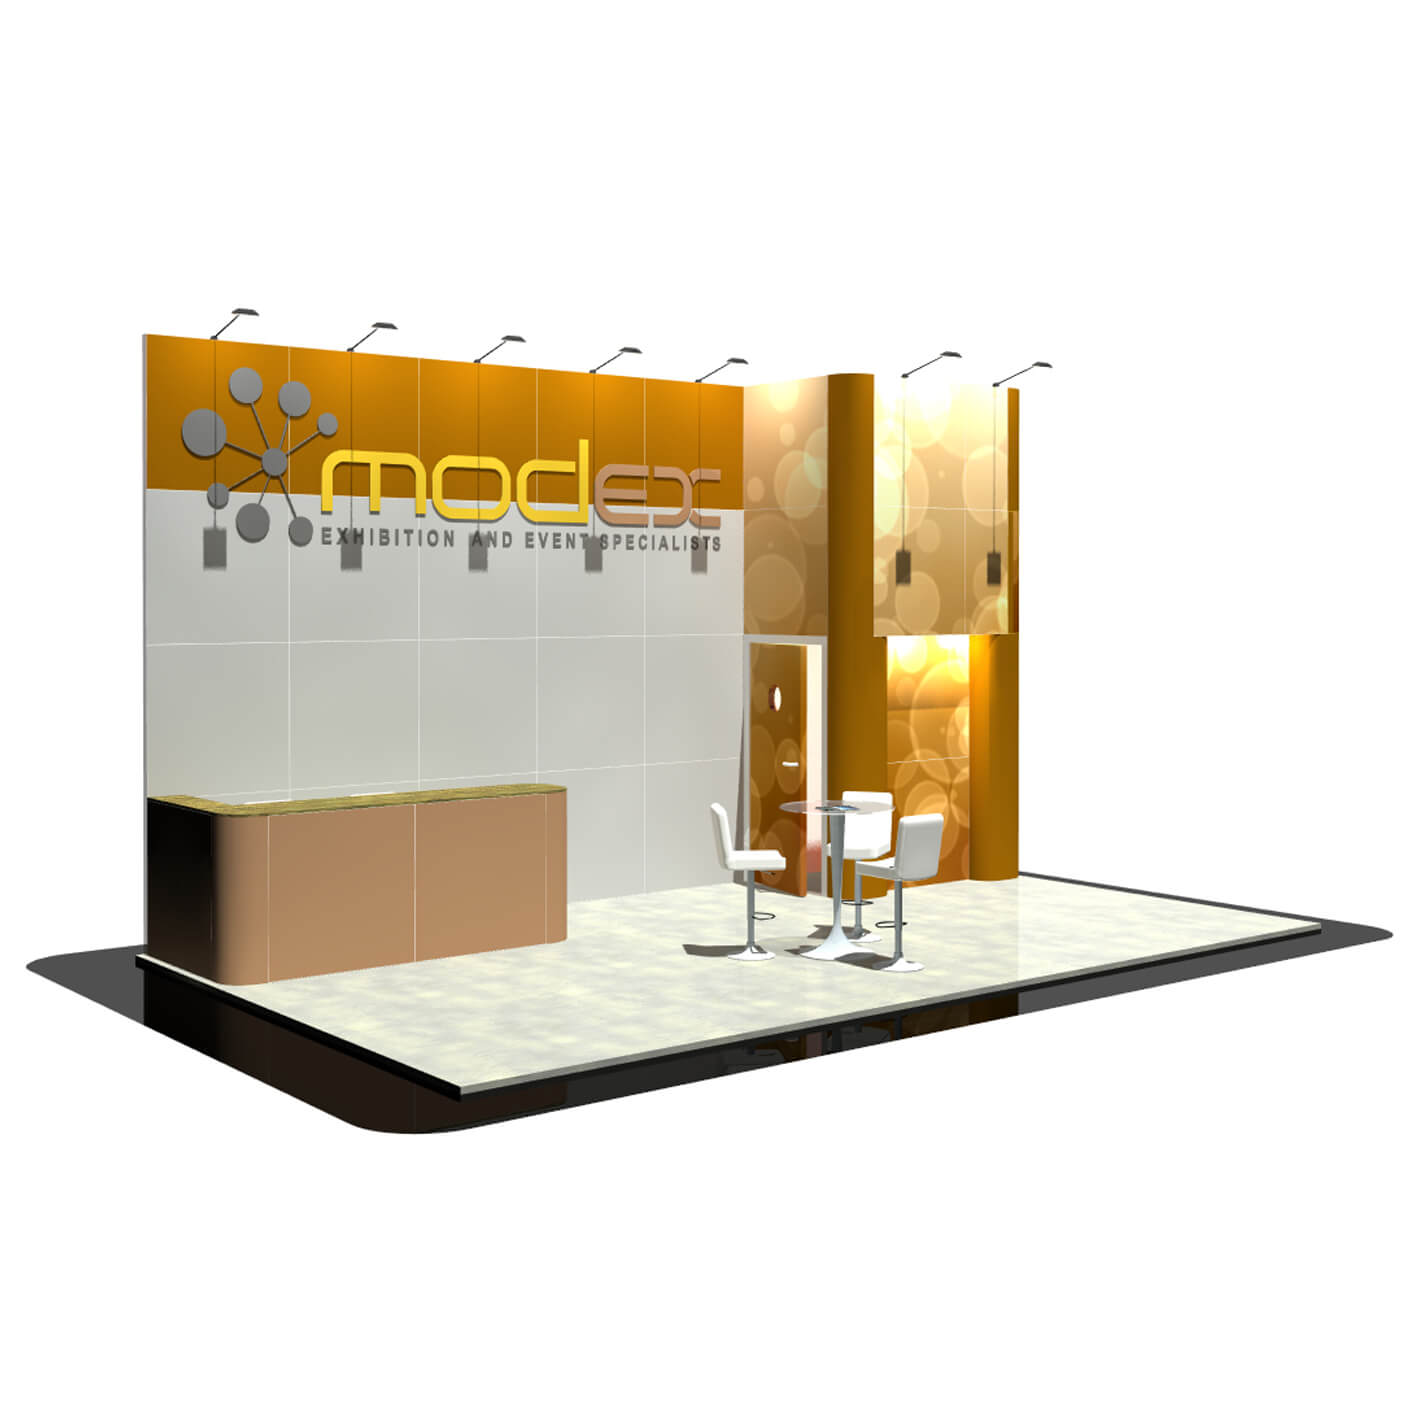 Exhibition Stand Layout Design : Inspiration for exhibition stands modex uk